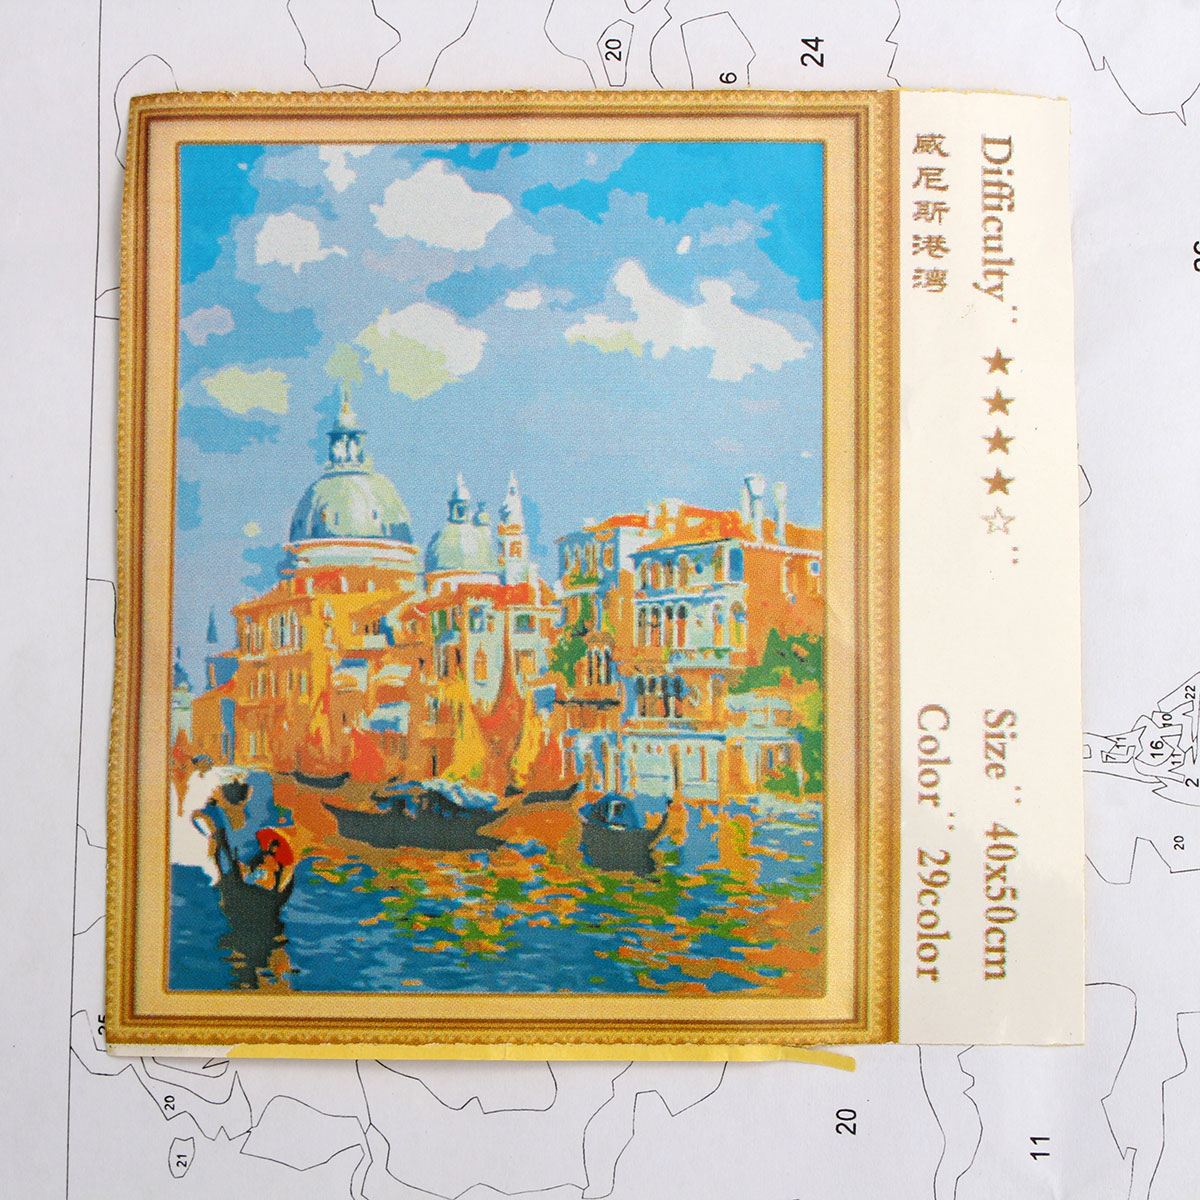 Numbers Kit DIY Painting Oil Painting Frameless Picture Digital Water Castle Drawing Wall Decor Gift 40x50cm